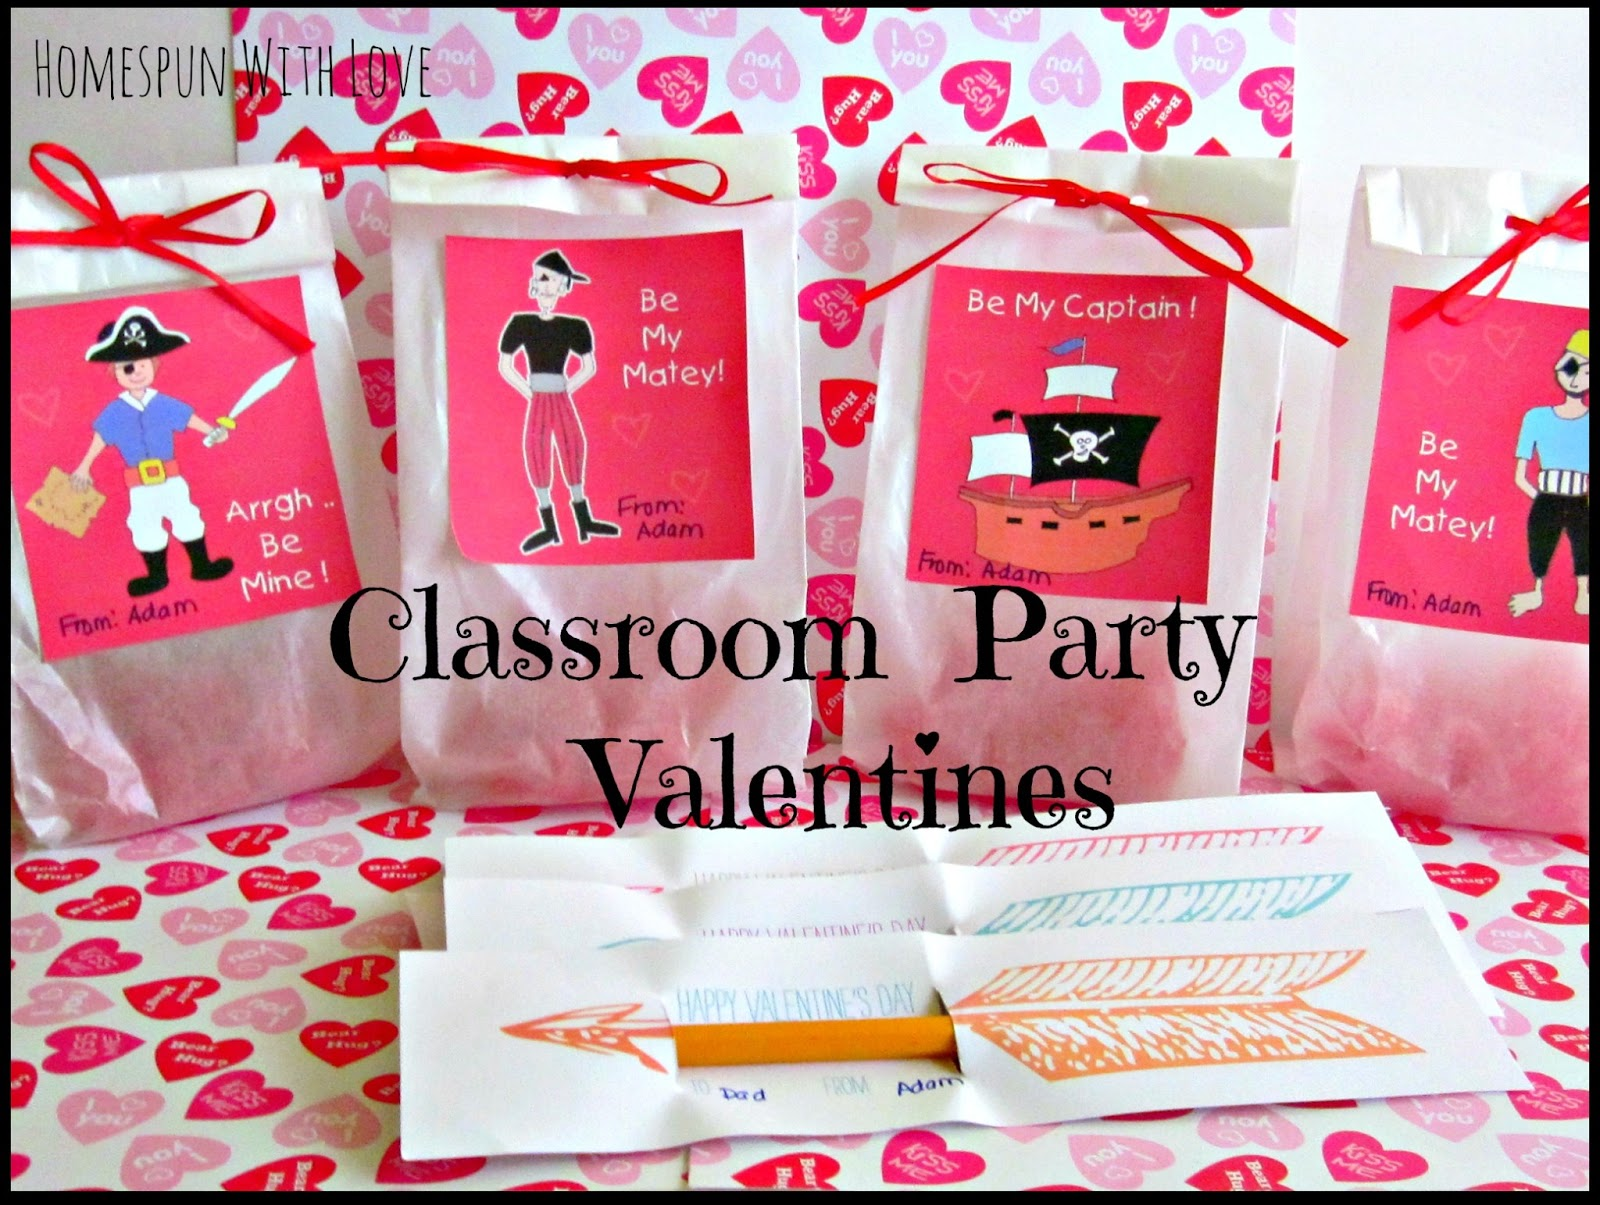 Homespun With Love Classroom Party Valentines